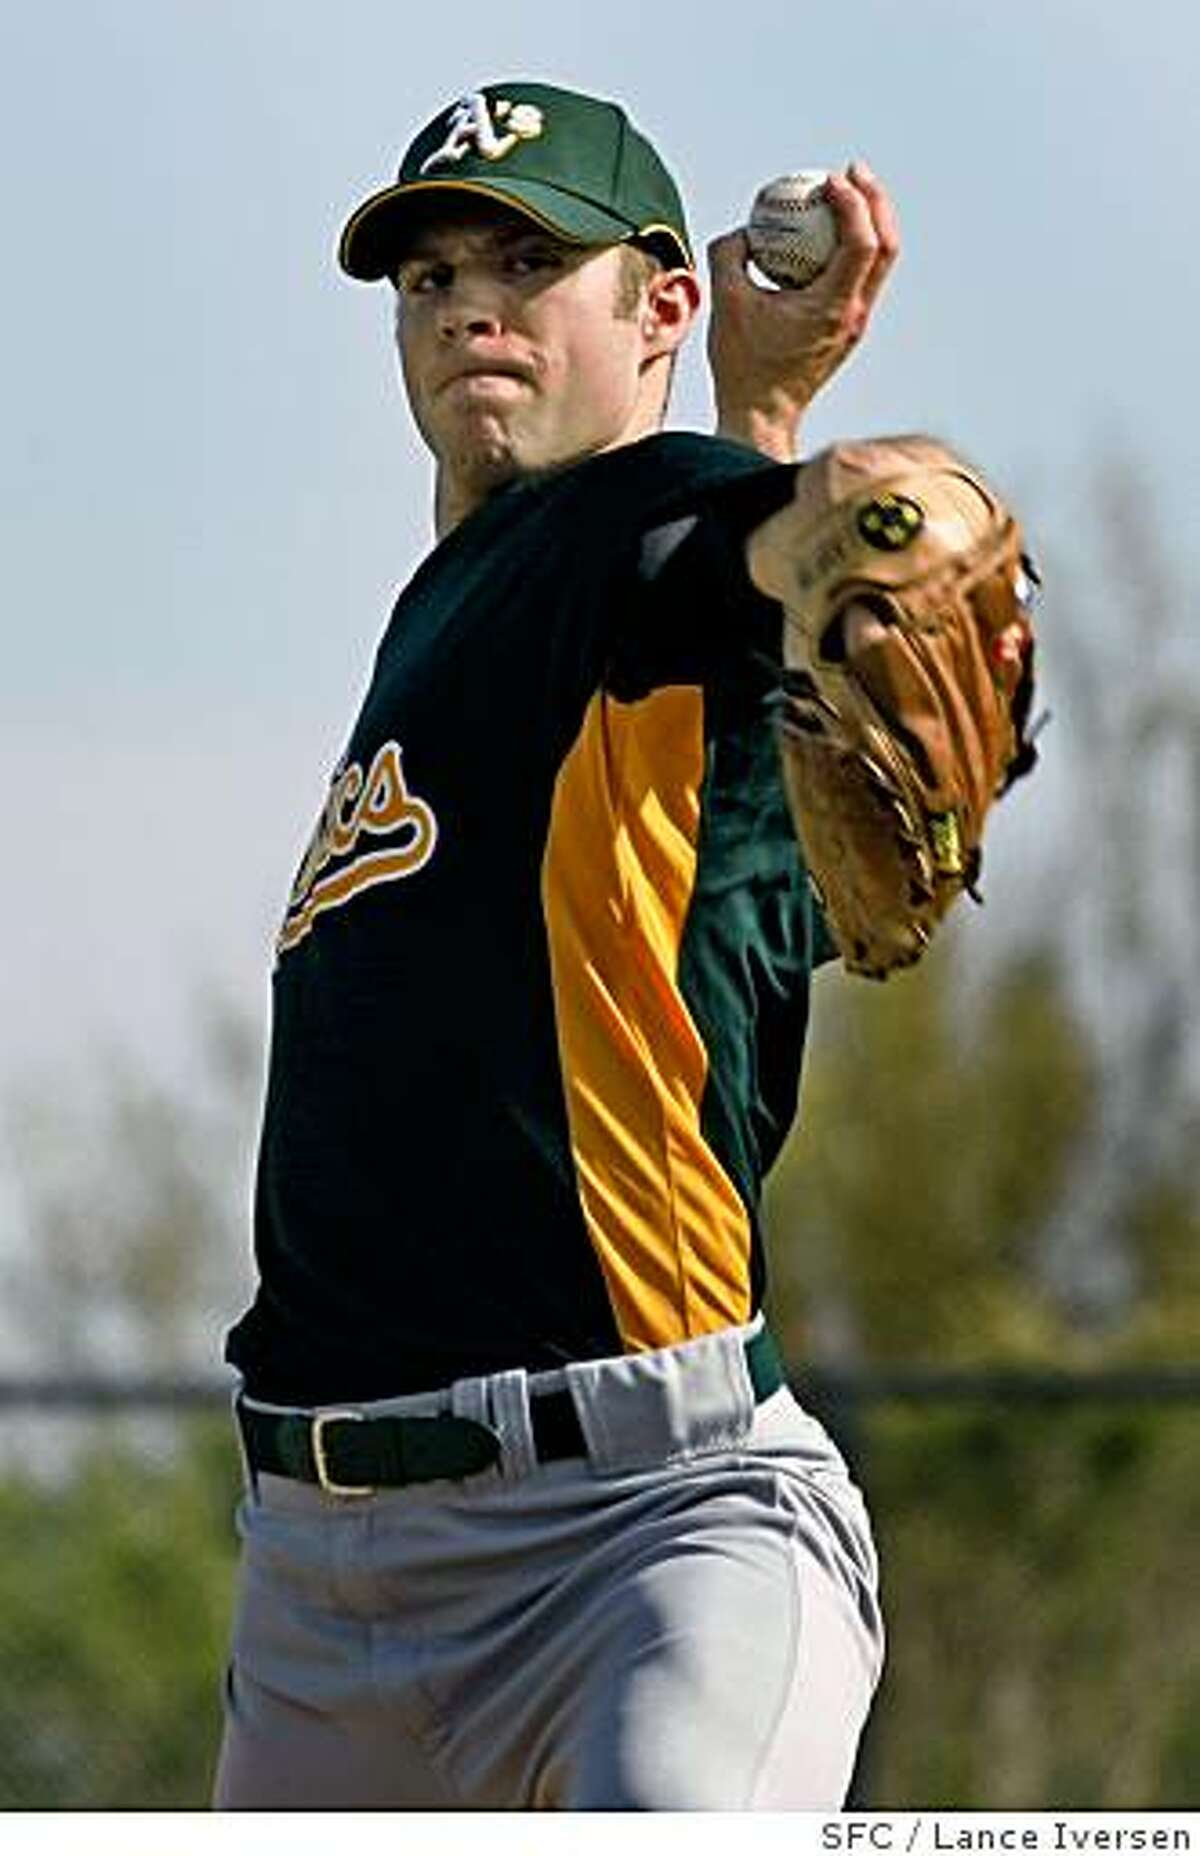 Oakland Athletics pitcher Rich Harden took to the mound at Papago Park, home of the Oakland Athletics for spring training in Phoenix. By Lance Iversen/The San Francisco Chronicle